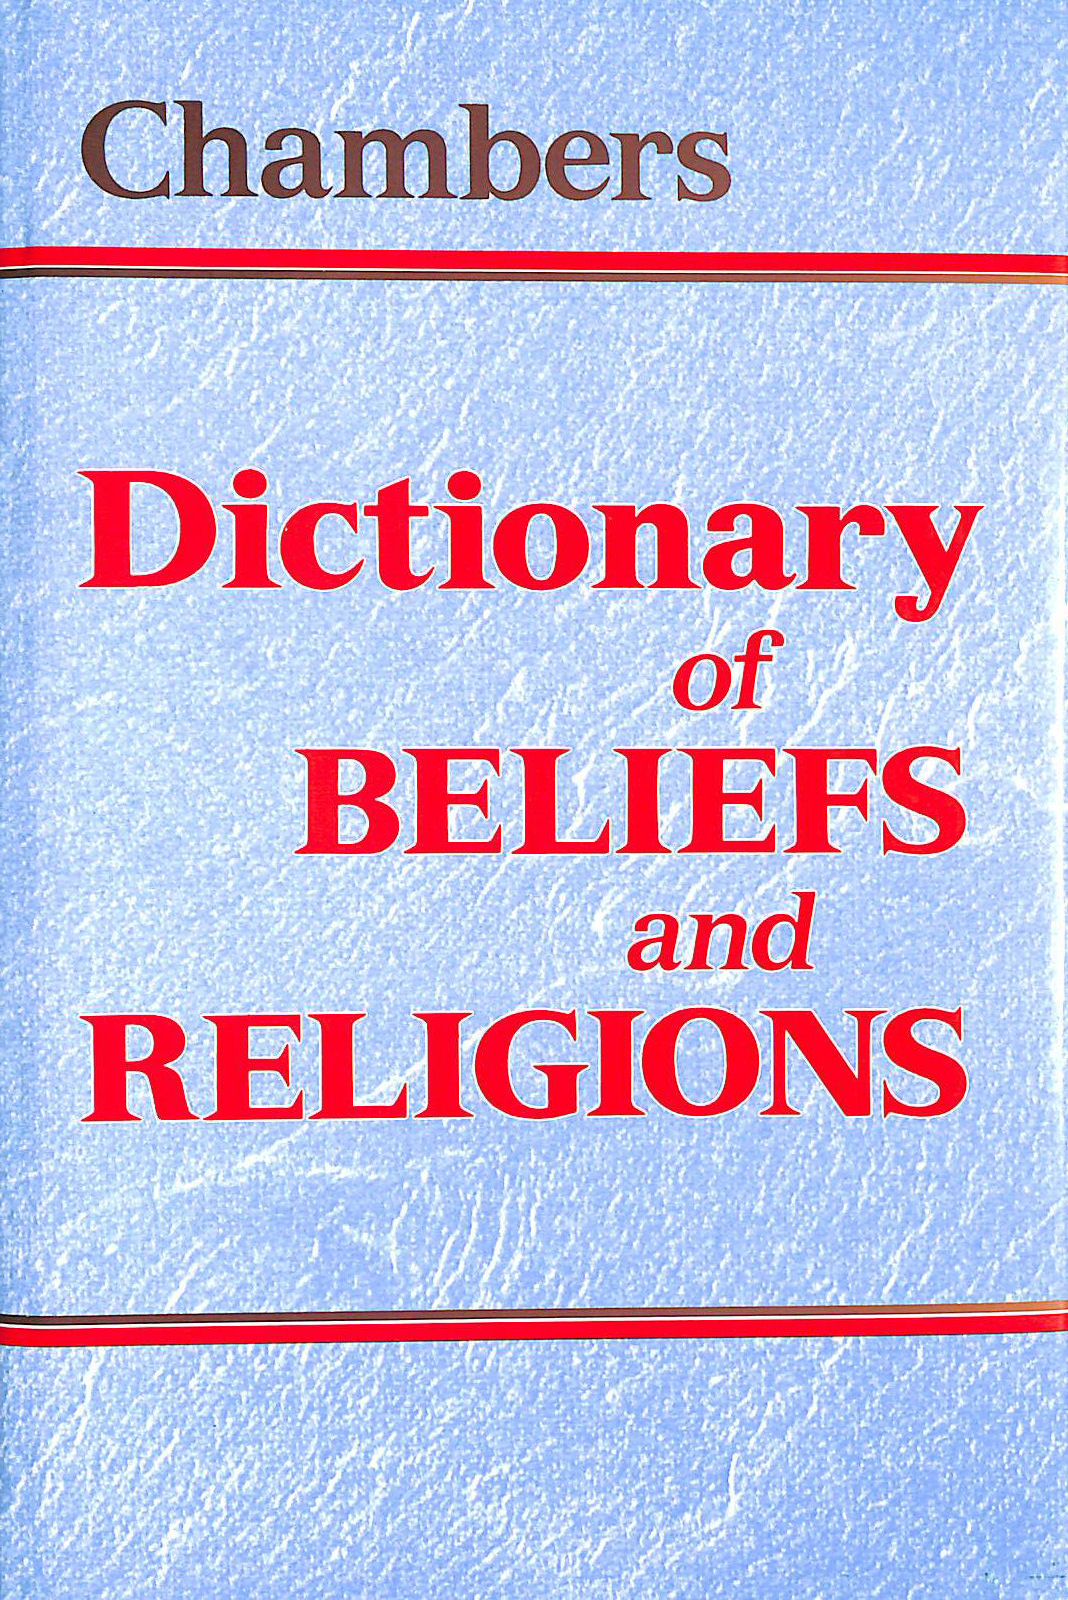 Image for Chambers Dictionary of Beliefs and Religions